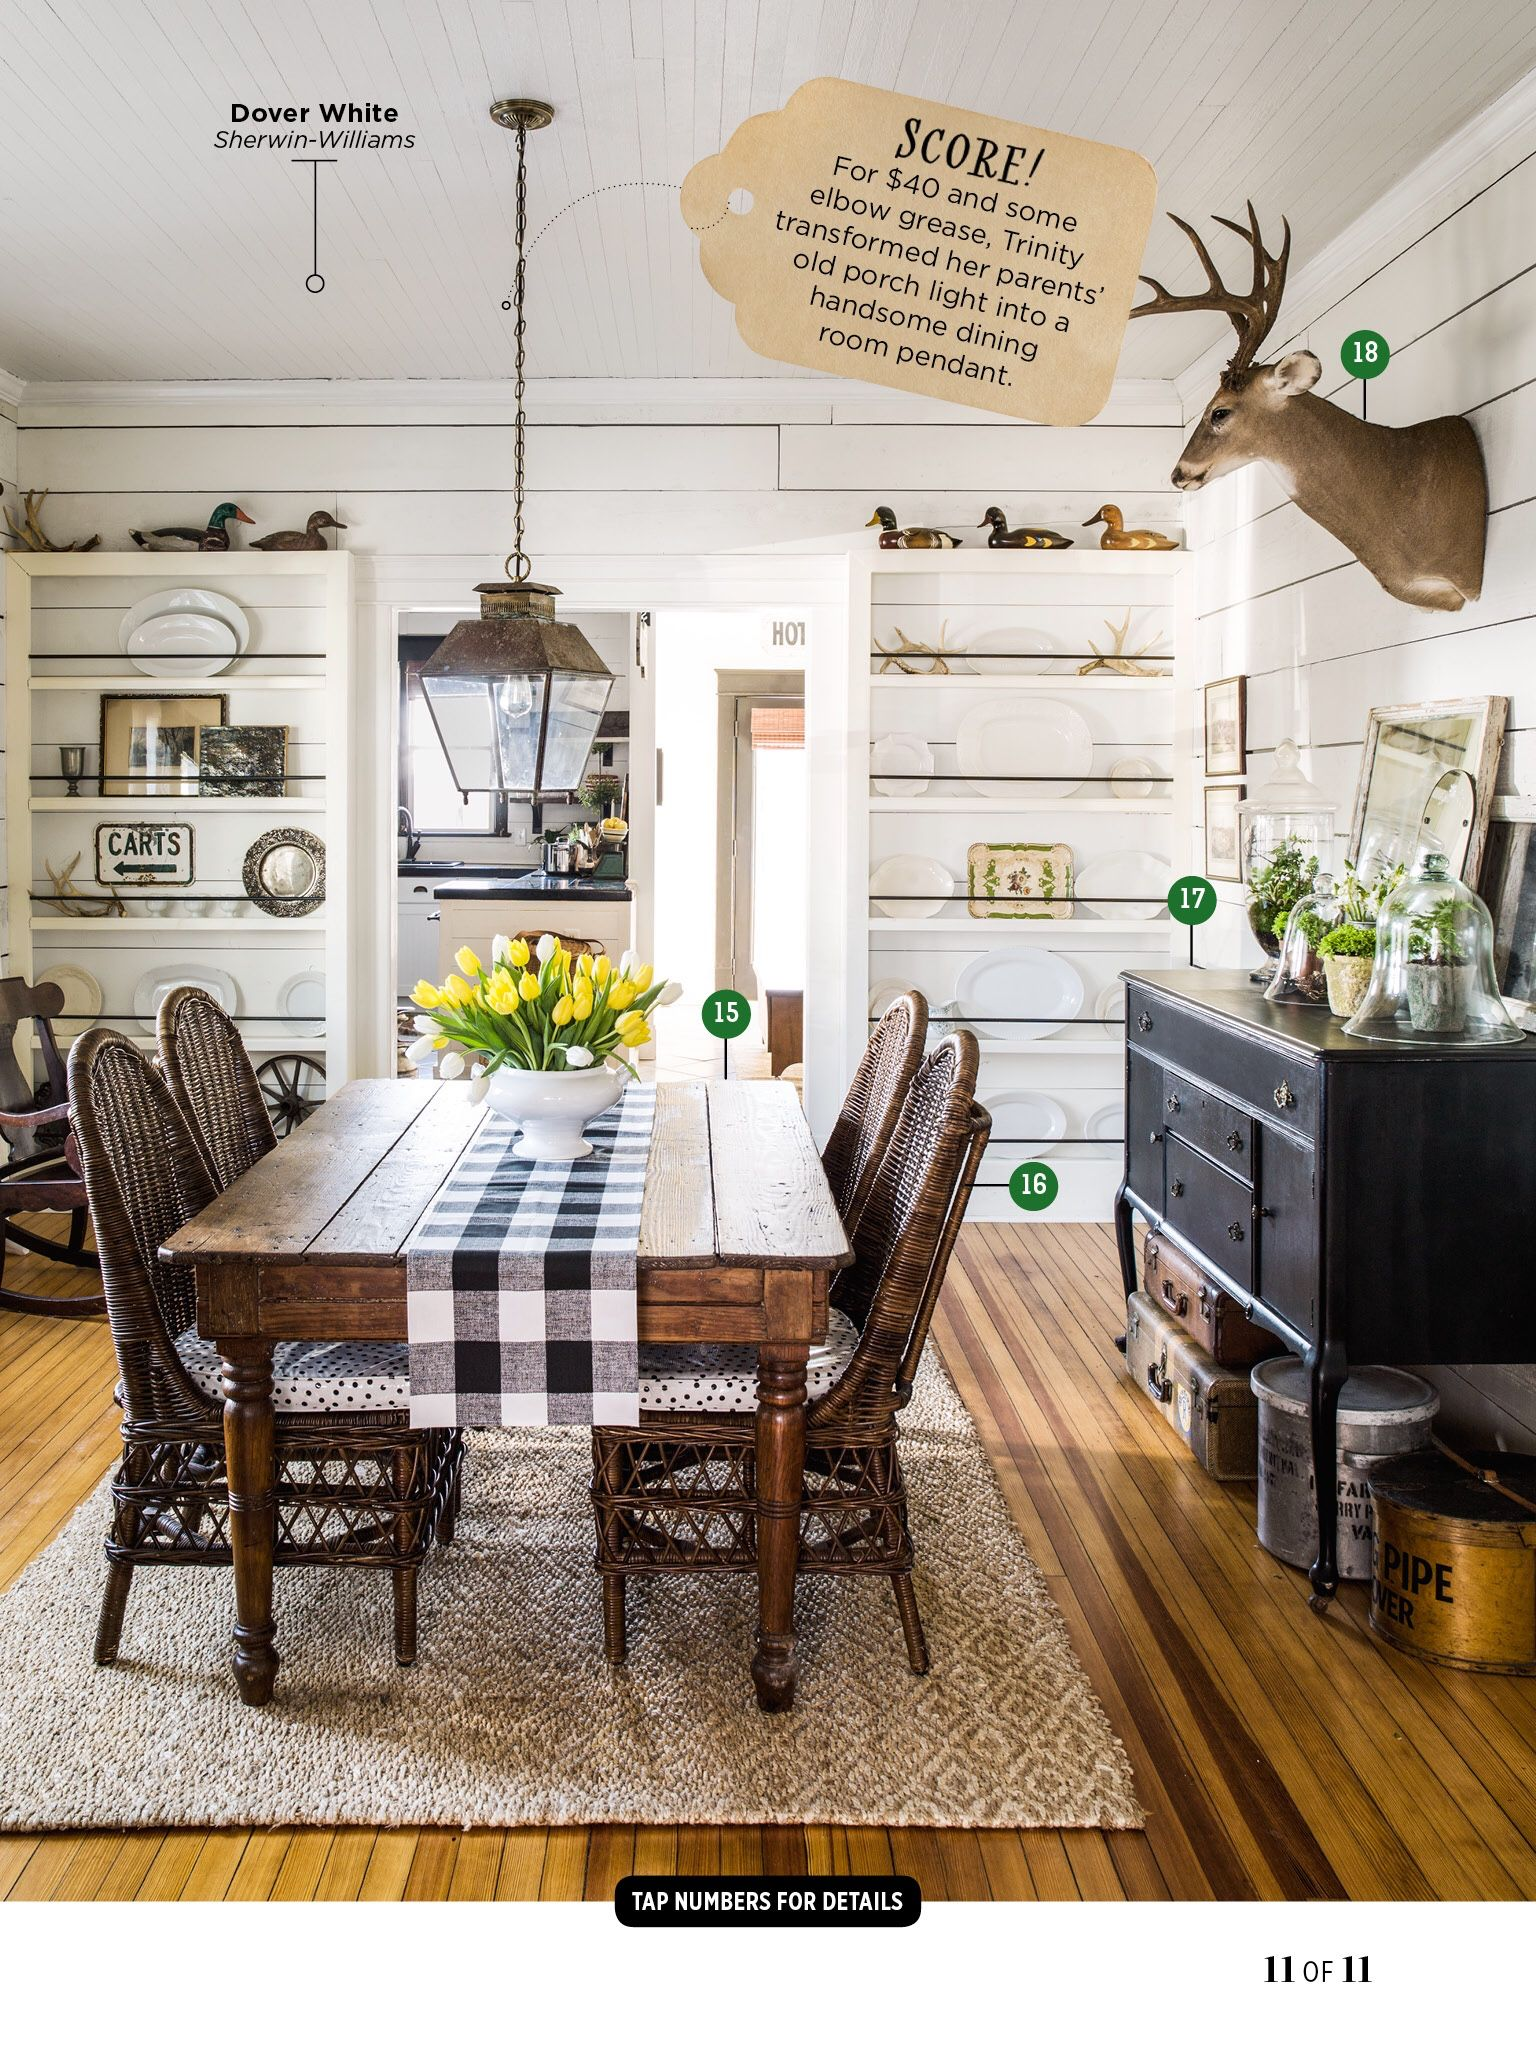 Pendant Light Over Dining Room Table I Saw This In The May 2015 Issue Of